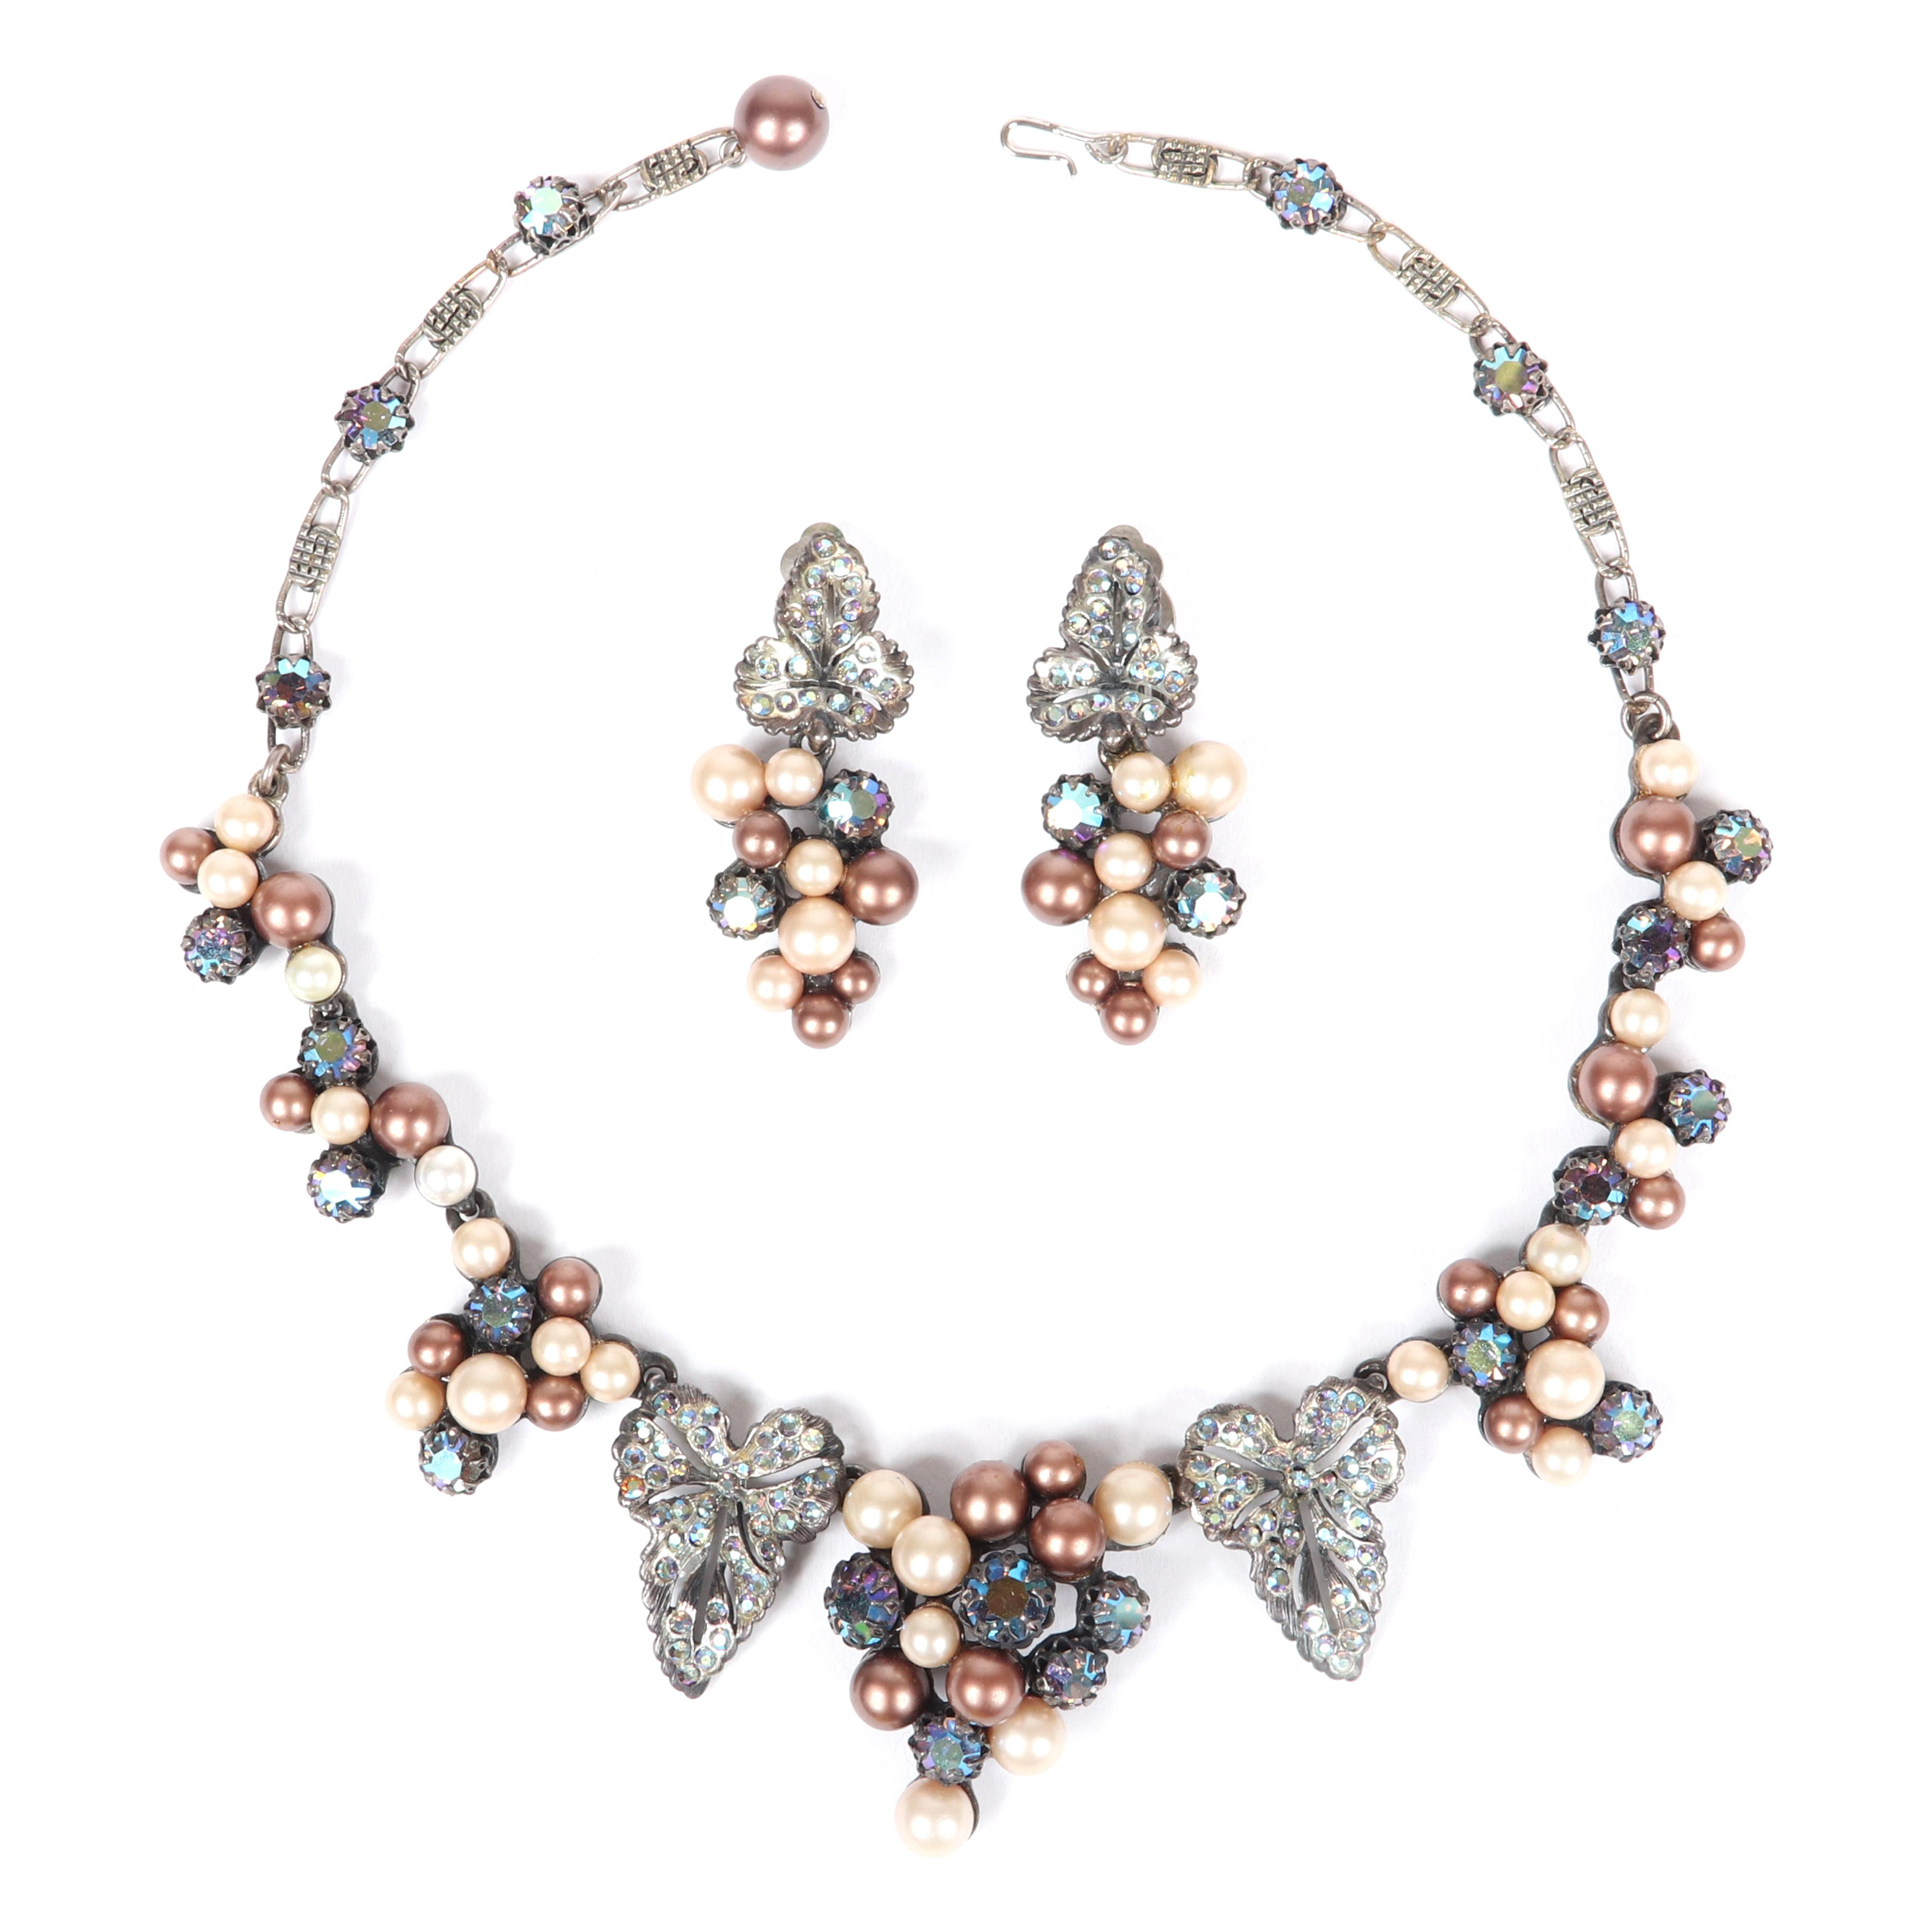 "Schiaparelli 2pc. grape bunch motif demi parure; necklace and earrings with champagne faux pearl and AB rhinestone clusters between openwork silver tone pave leaves. 17""L (necklace)"